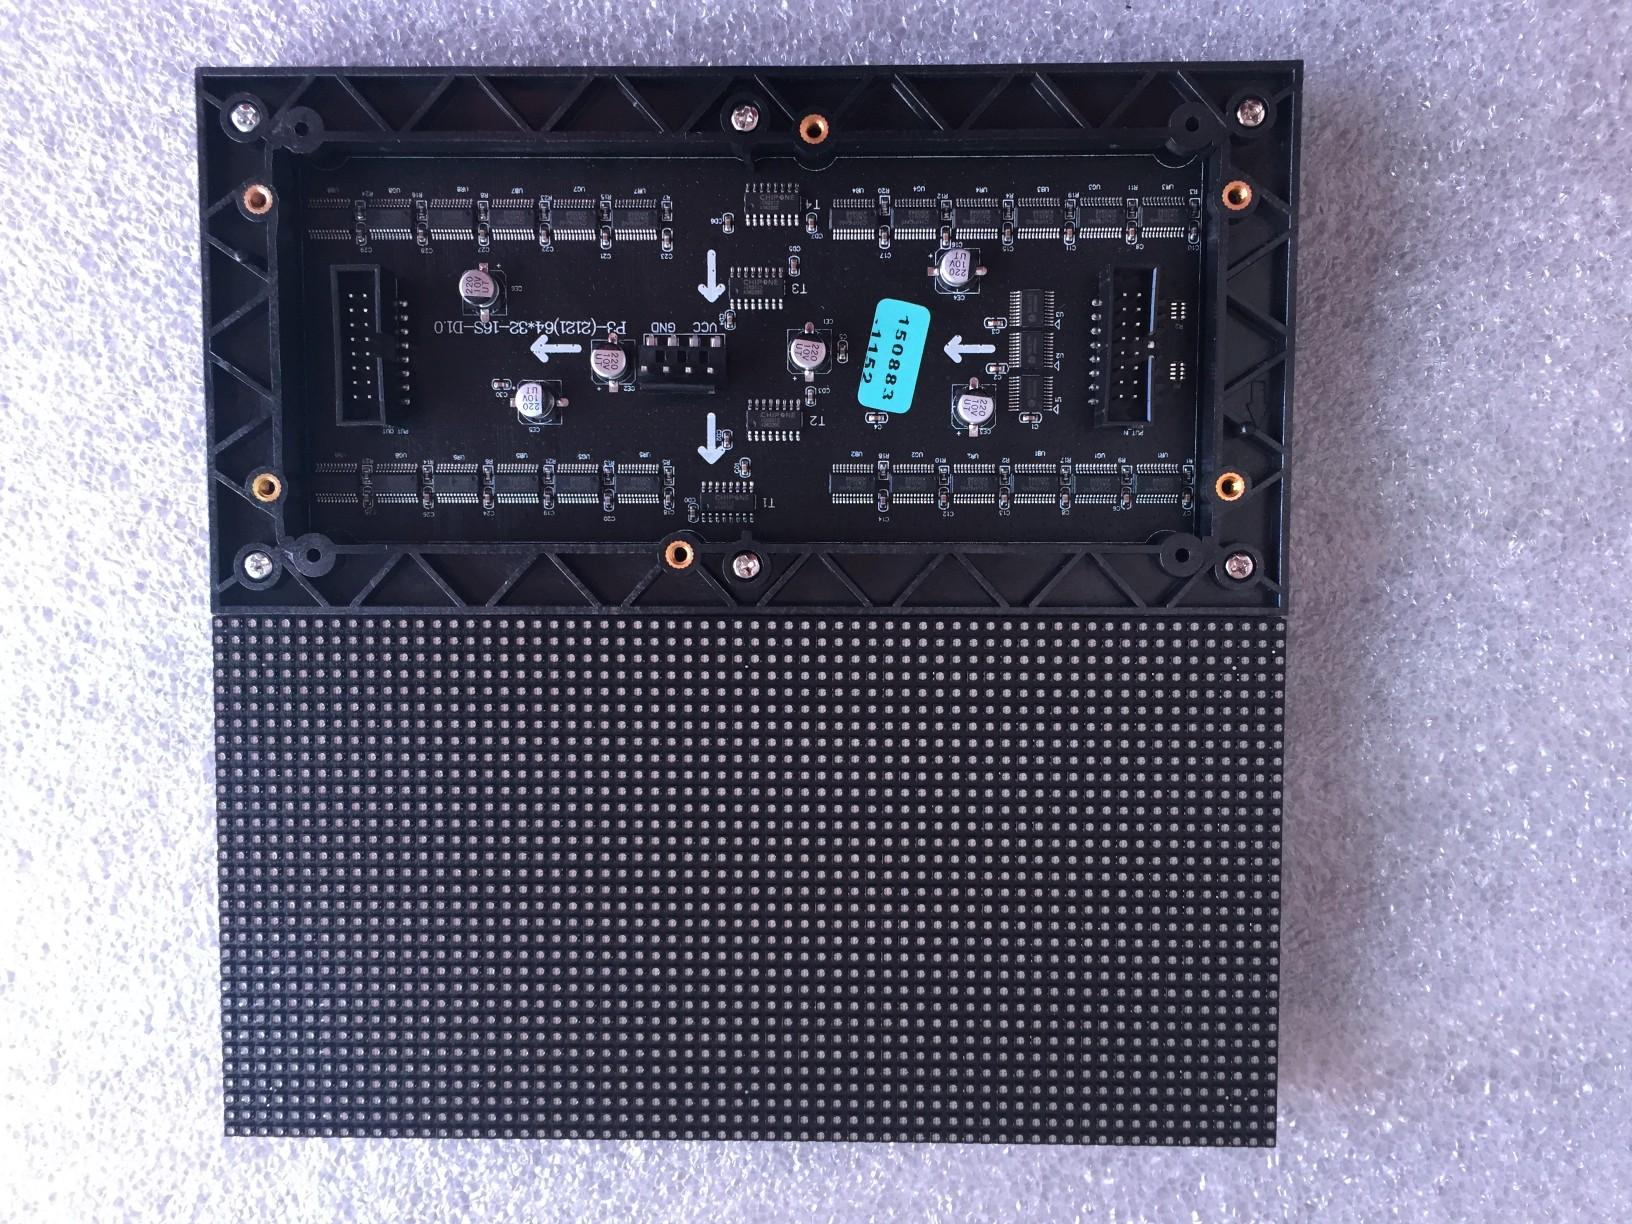 P3 Innen SMD RGB-LED-Display-Modul, 192 mm x 96 mm, 64 * 32 Pixel, p3 RGB-LED-Panel; Video, Bilder, bild, wirklich HD, Hub75, 16pin